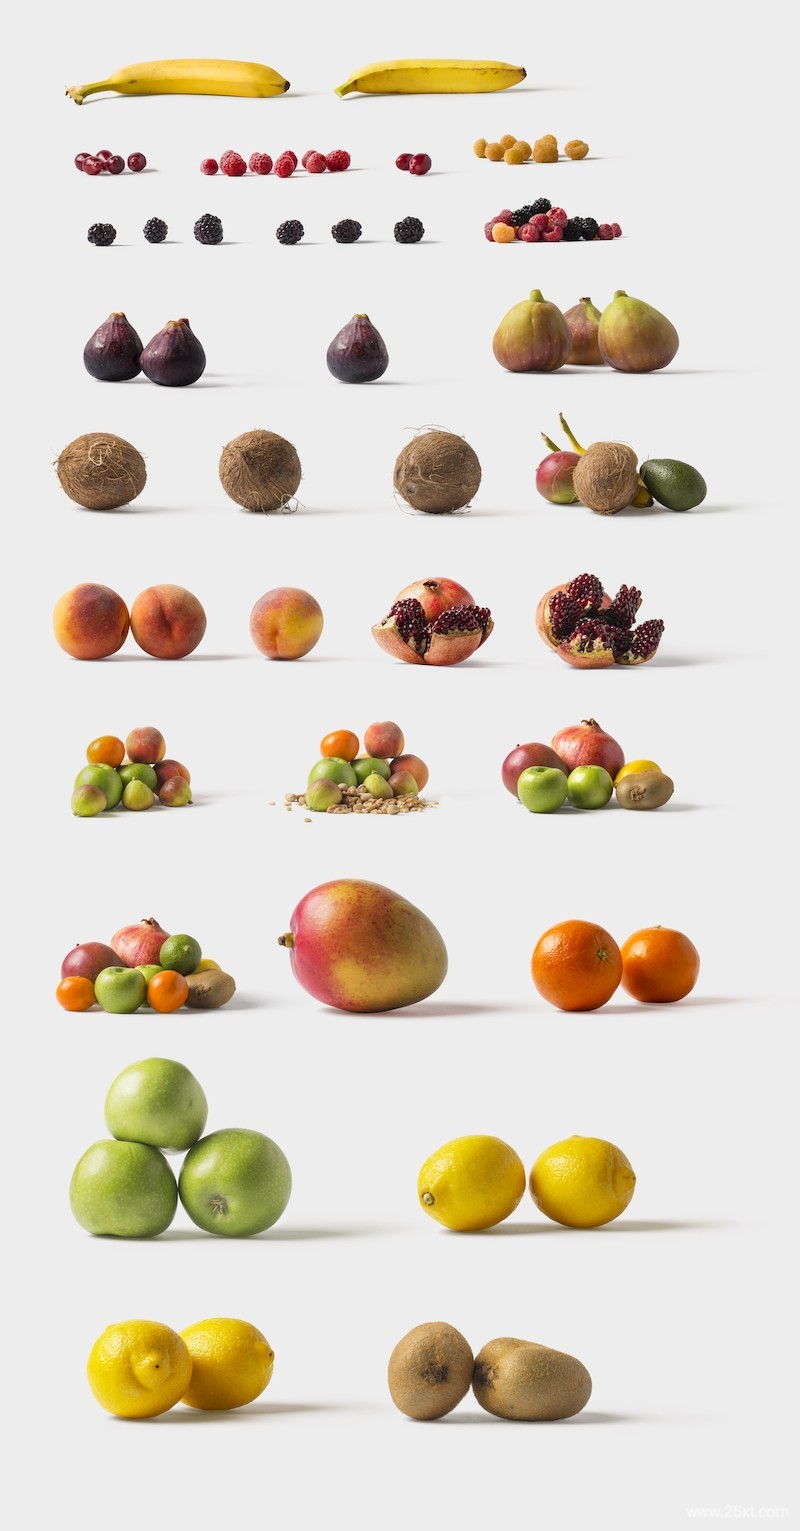 Fruits and Vegetables-4.jpg